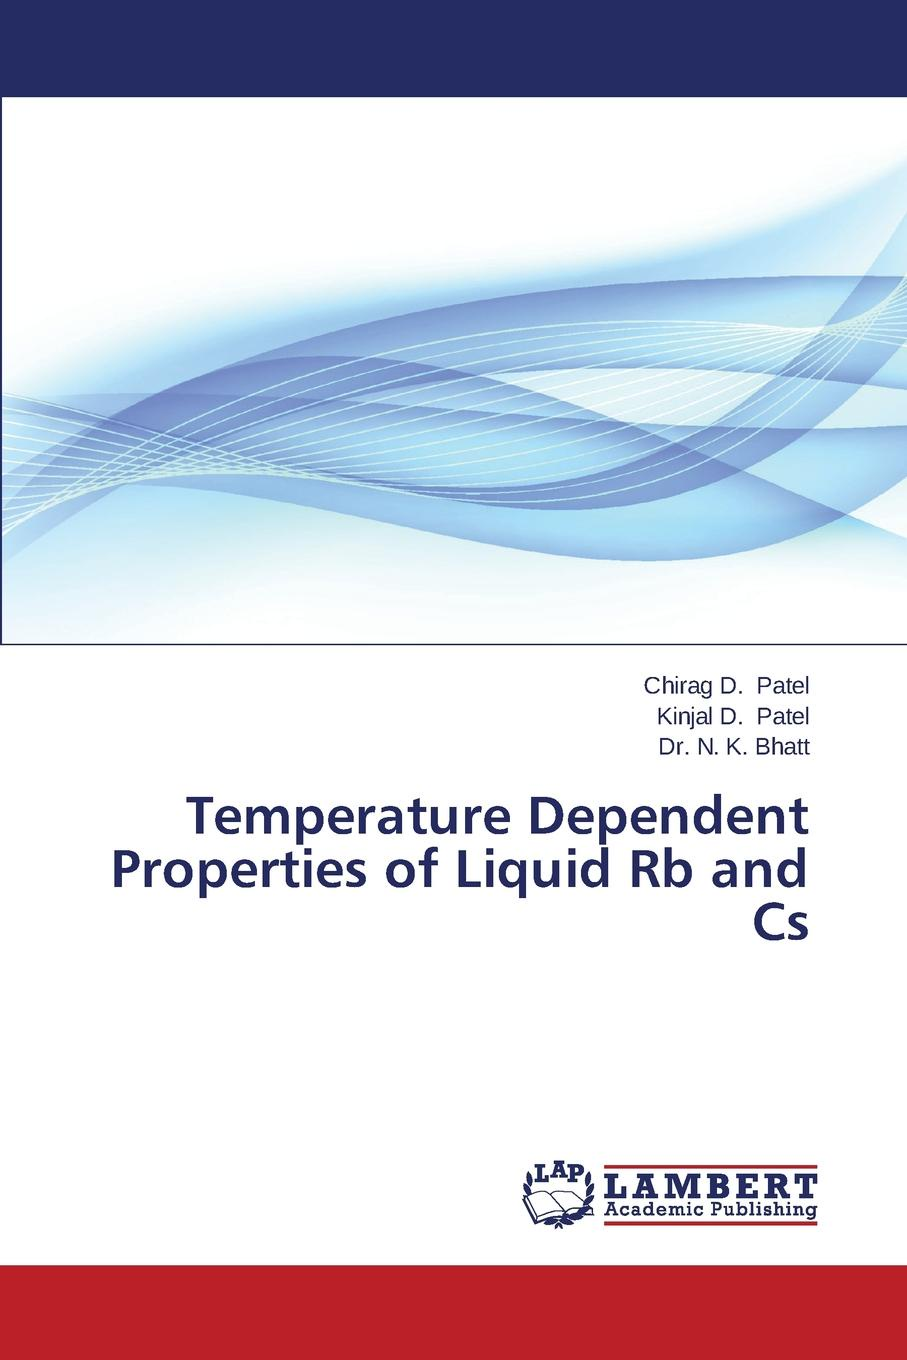 Patel Chirag D., Patel Kinjal D., Bhatt Dr N. K. Temperature Dependent Properties of Liquid RB and CS